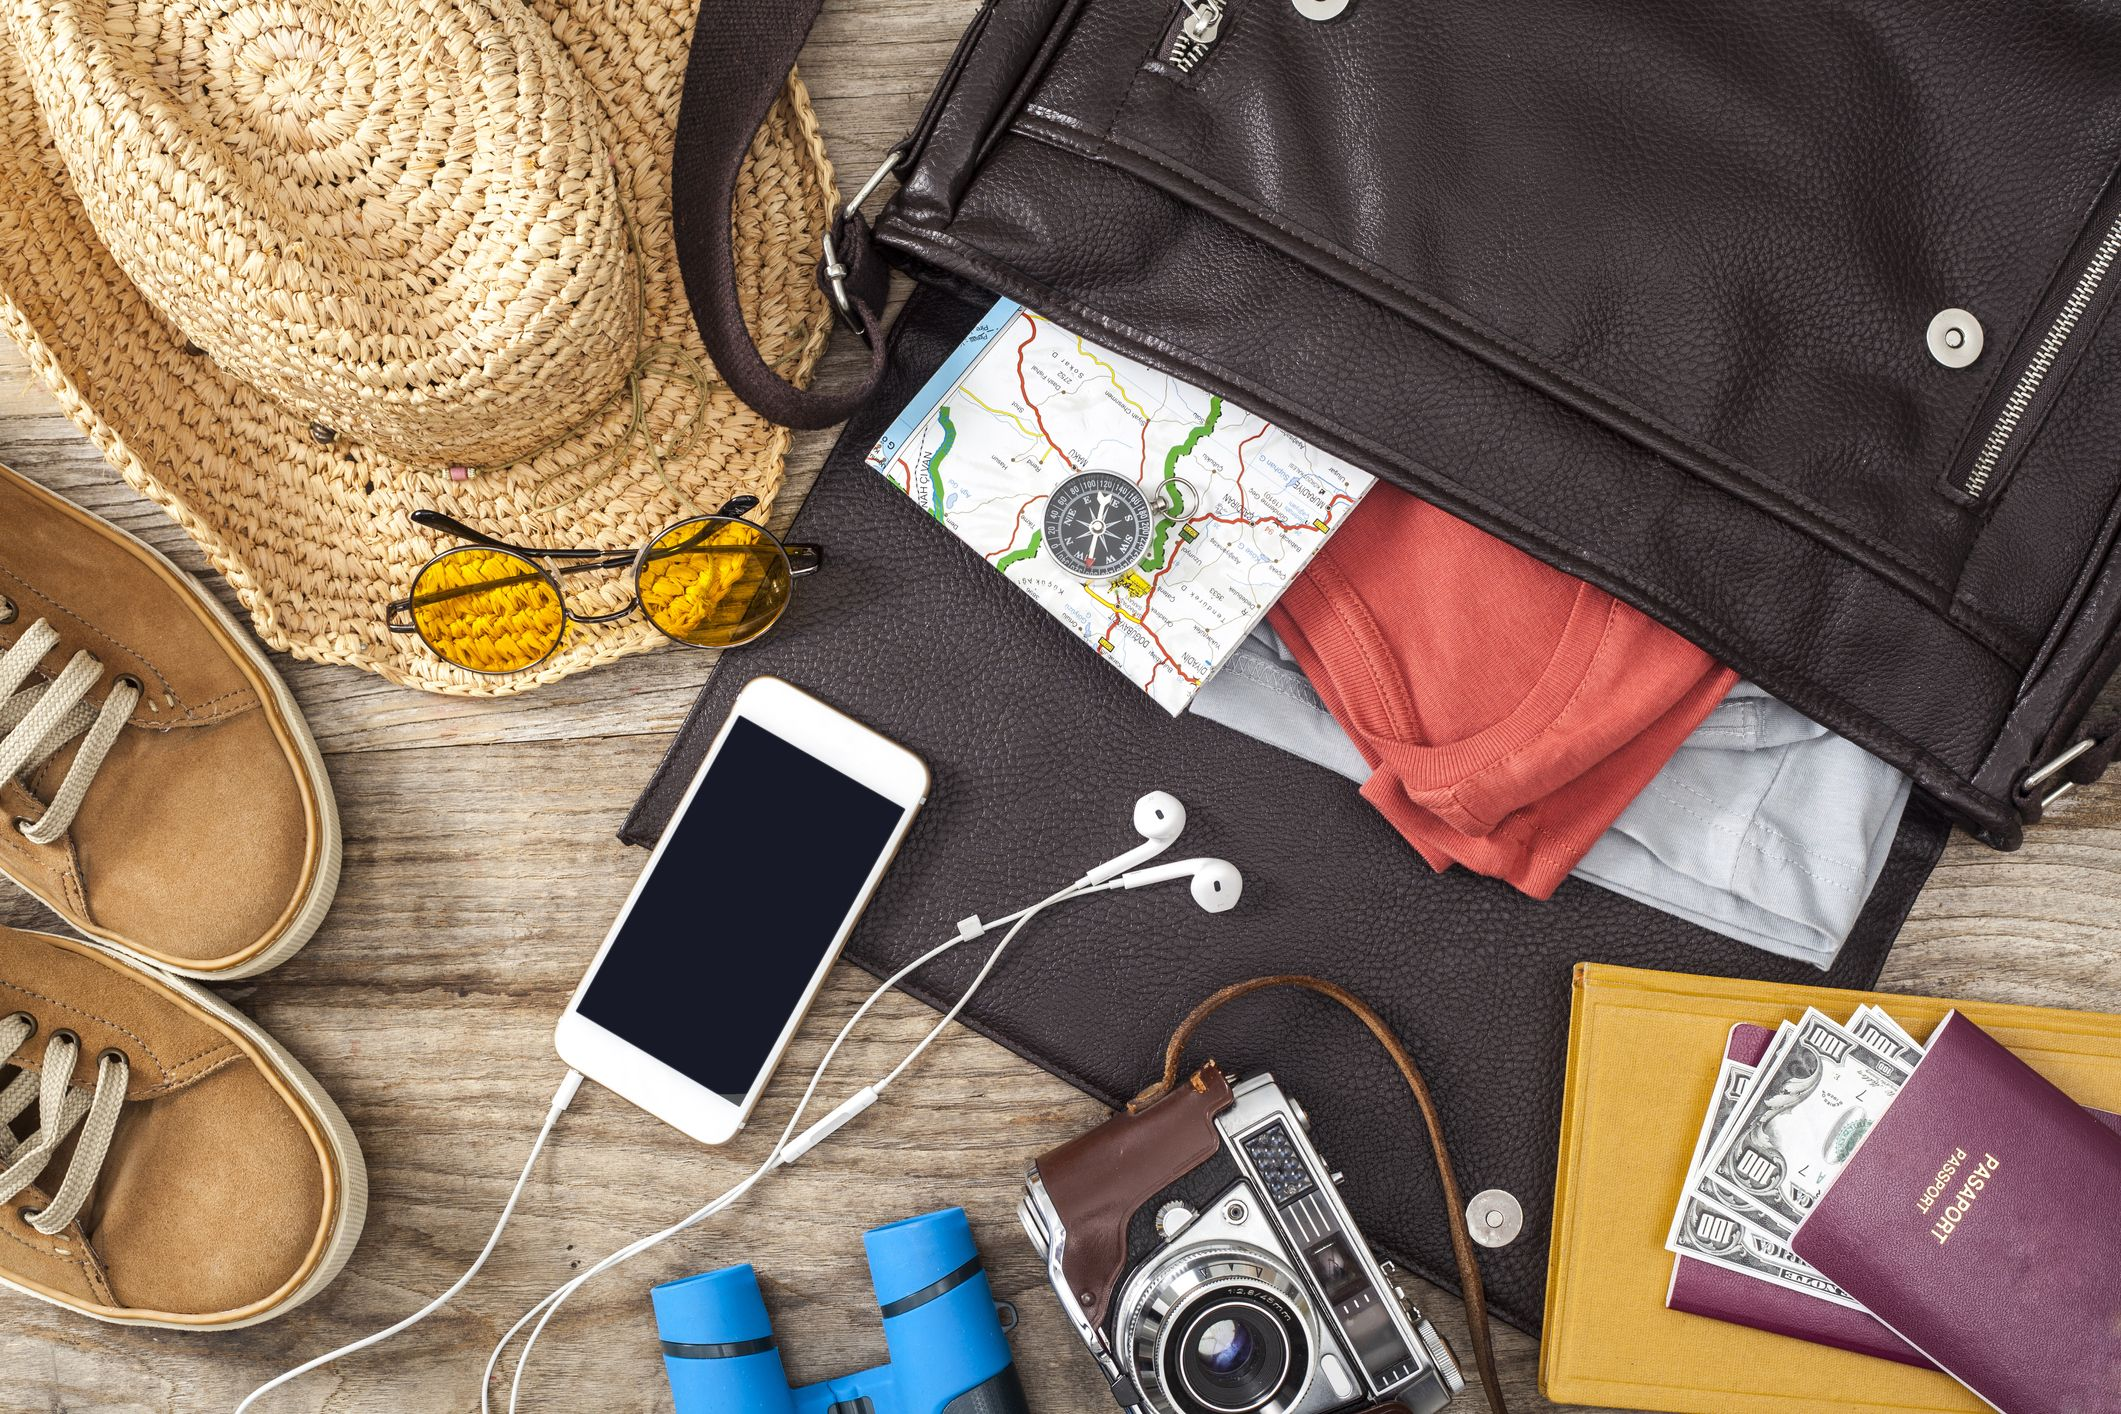 17 Best Travel Gadgets of 2019  Cool Travel Accessories for Vacations